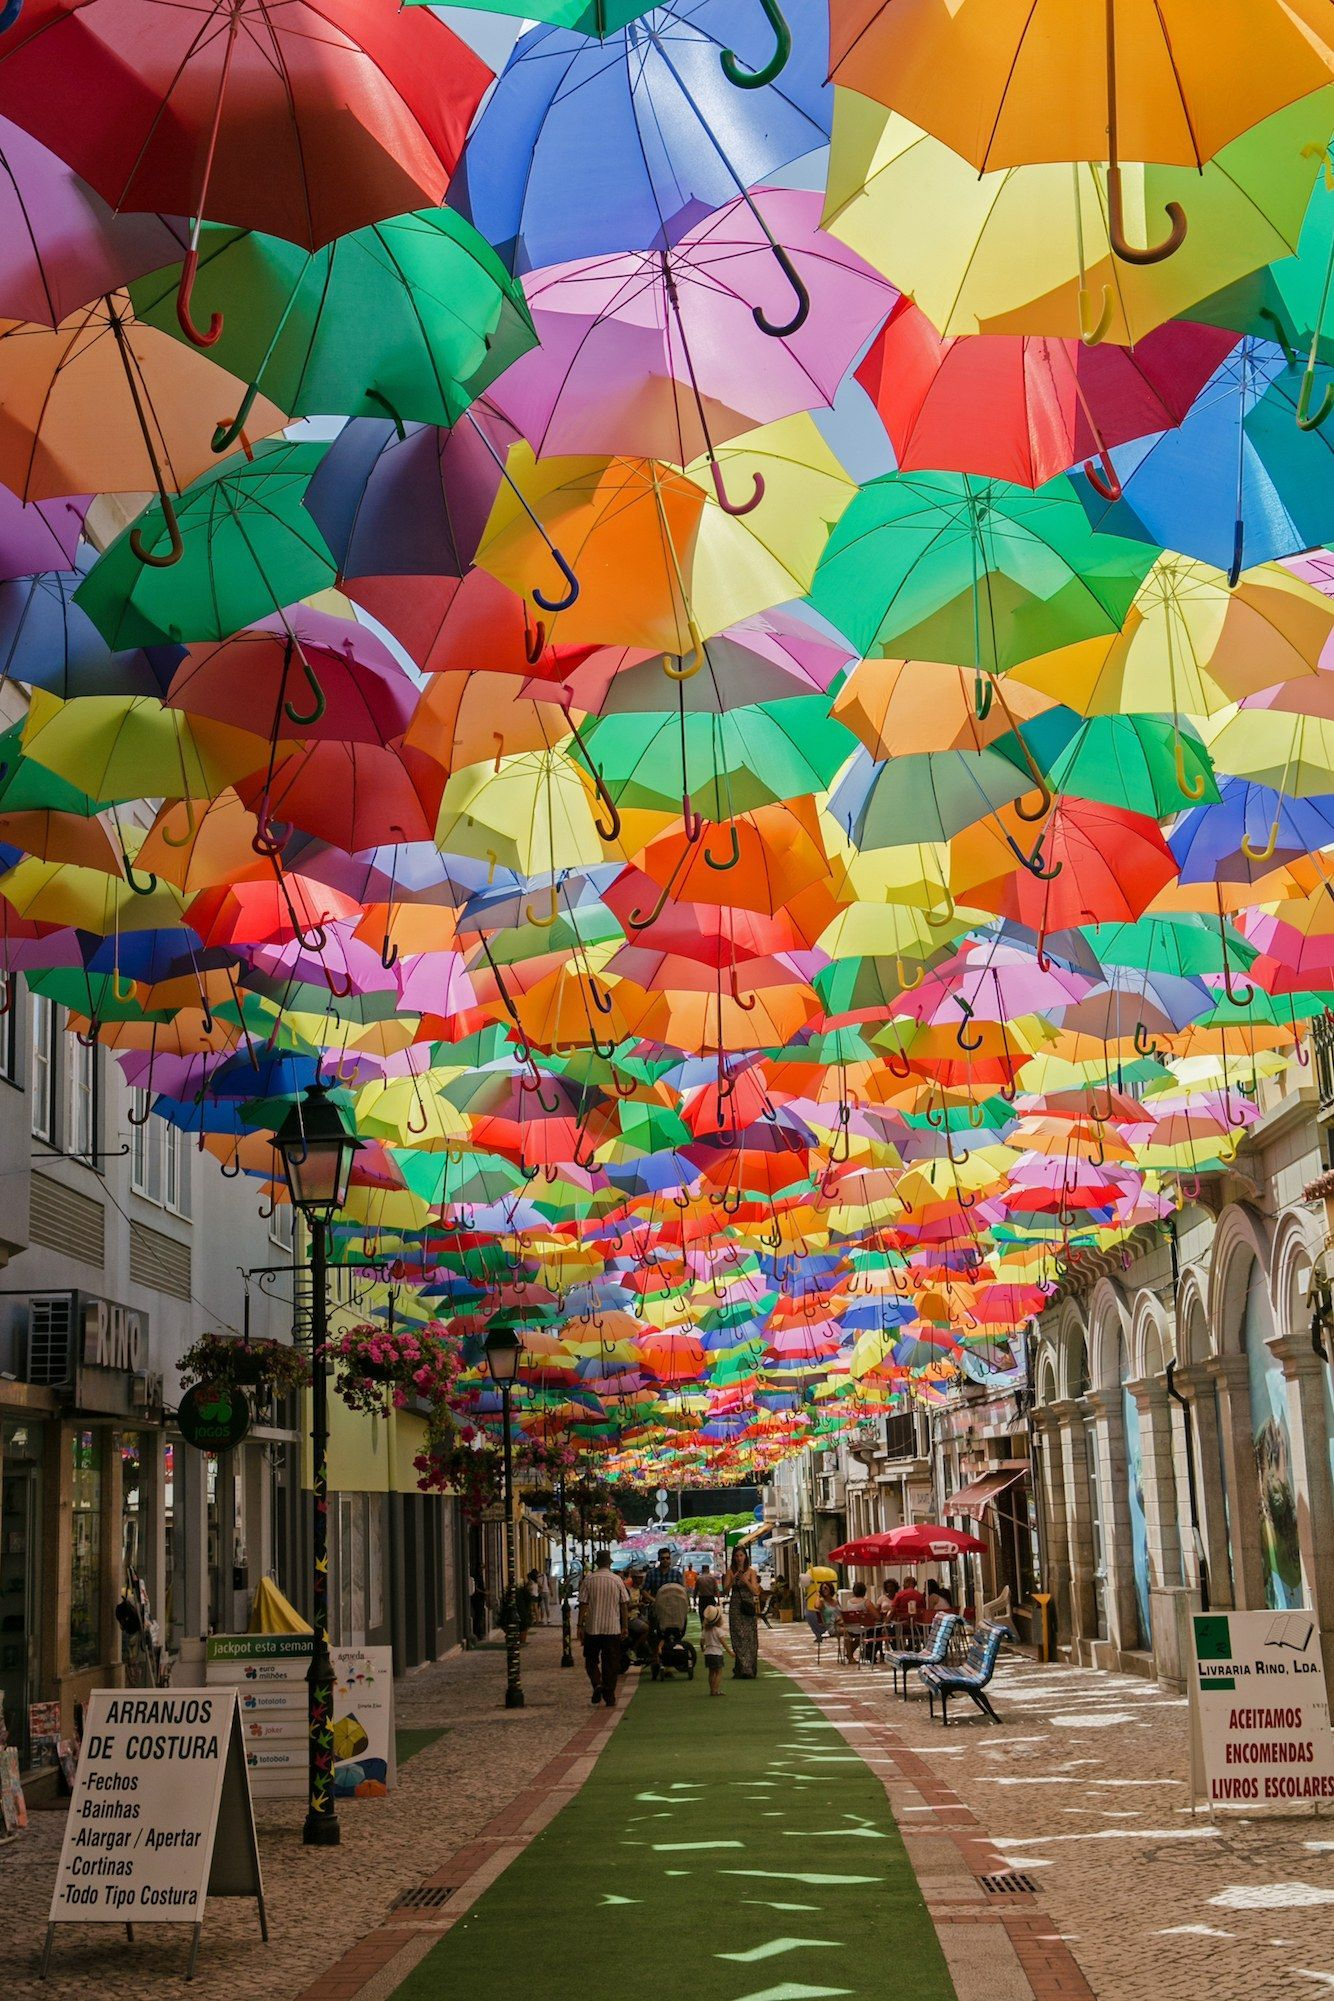 Inspo from our friends! Águedas Umbrella Sky Project began in 2011 as a part of the Portuguese citys annual Ágitagueda Art Festival. Each summer, when temperatures soar, a handful of Águedas narrow streets feature canopies of colorful umbrellas that provide shade to the pedestrians bel #photosofnature